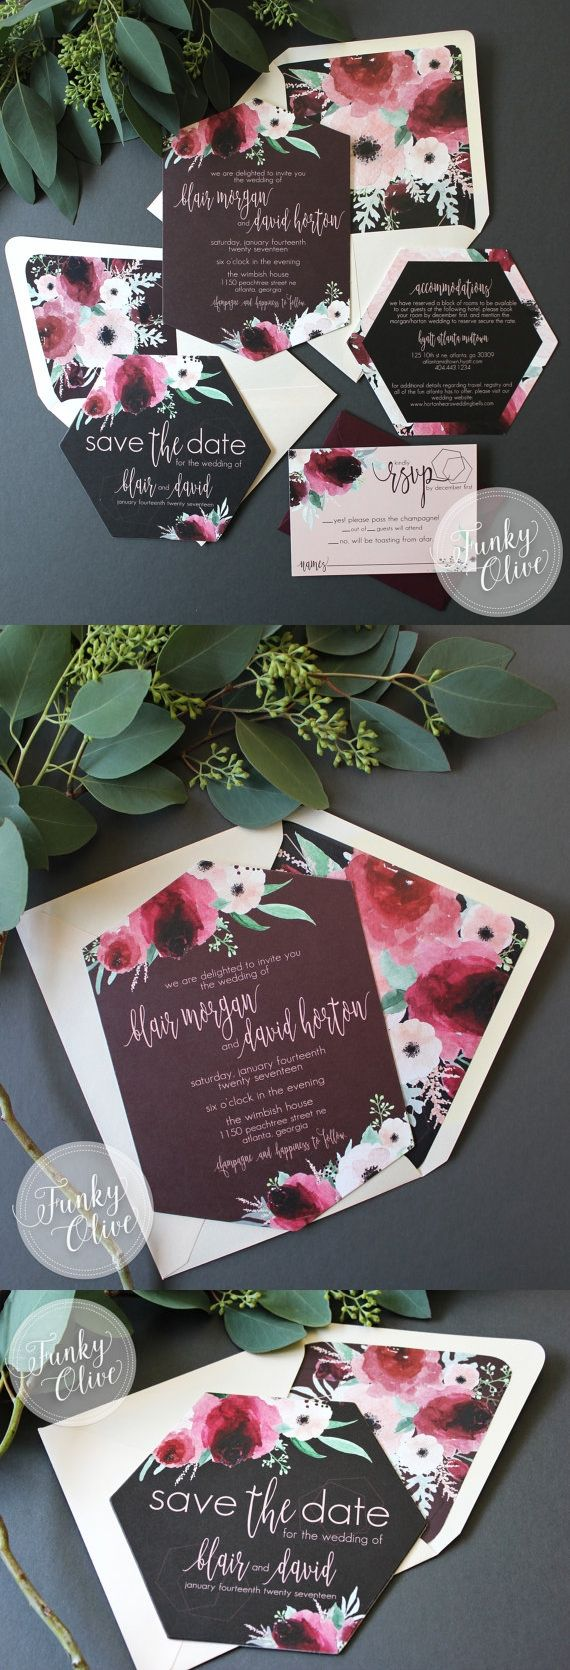 Geometric Boho Dark Watercolor Floral Wedding Invitation Hexagon Burgundy Blush Die Cut Romantic Envelope Liner Charcoal Cranberry Marsala